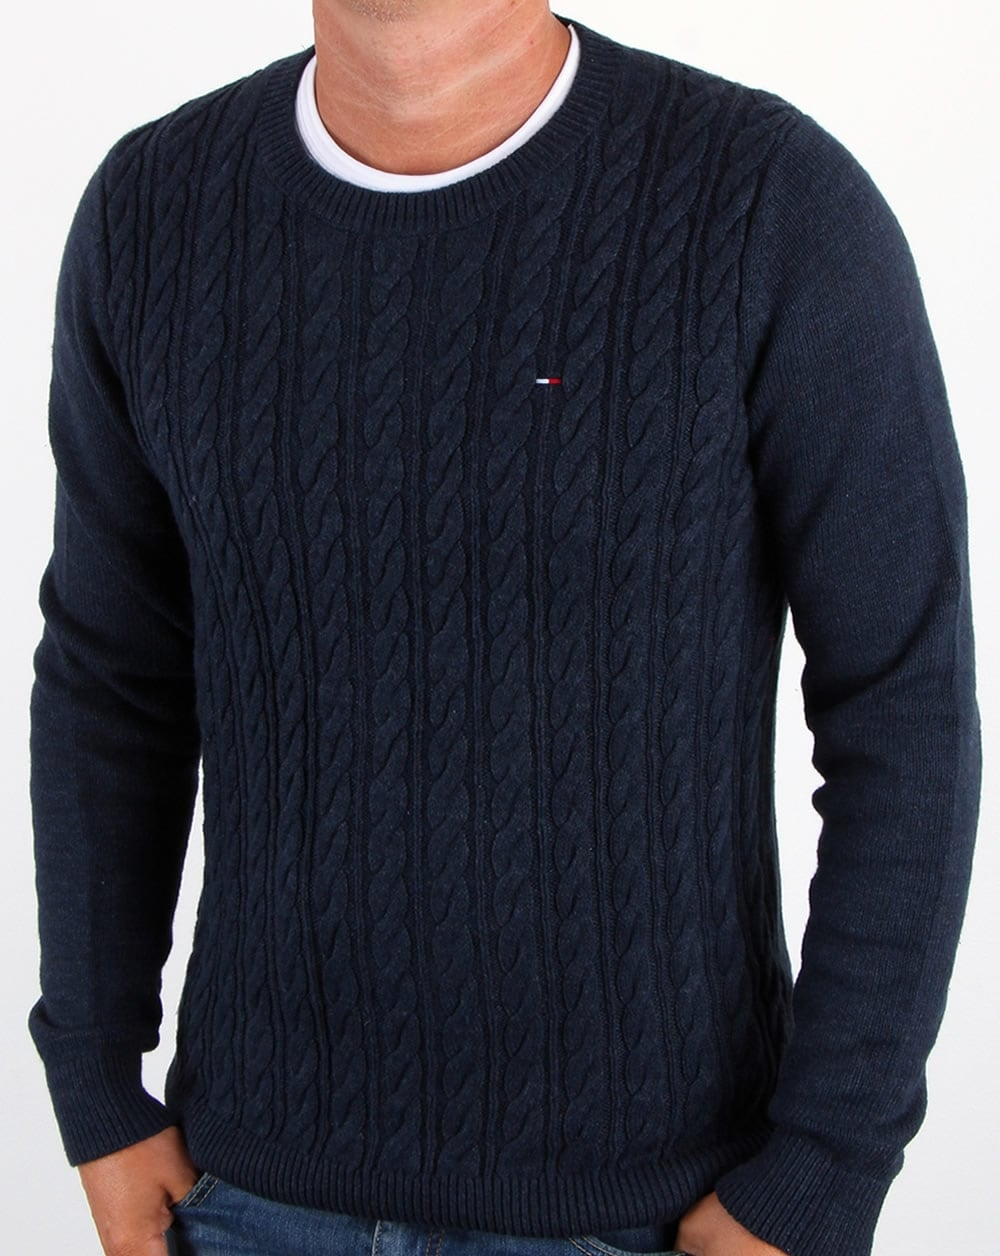 fba61806e35 Tommy Hilfiger Cable Knit Jumper Navy,blue,crew neck,sweater,top,mens